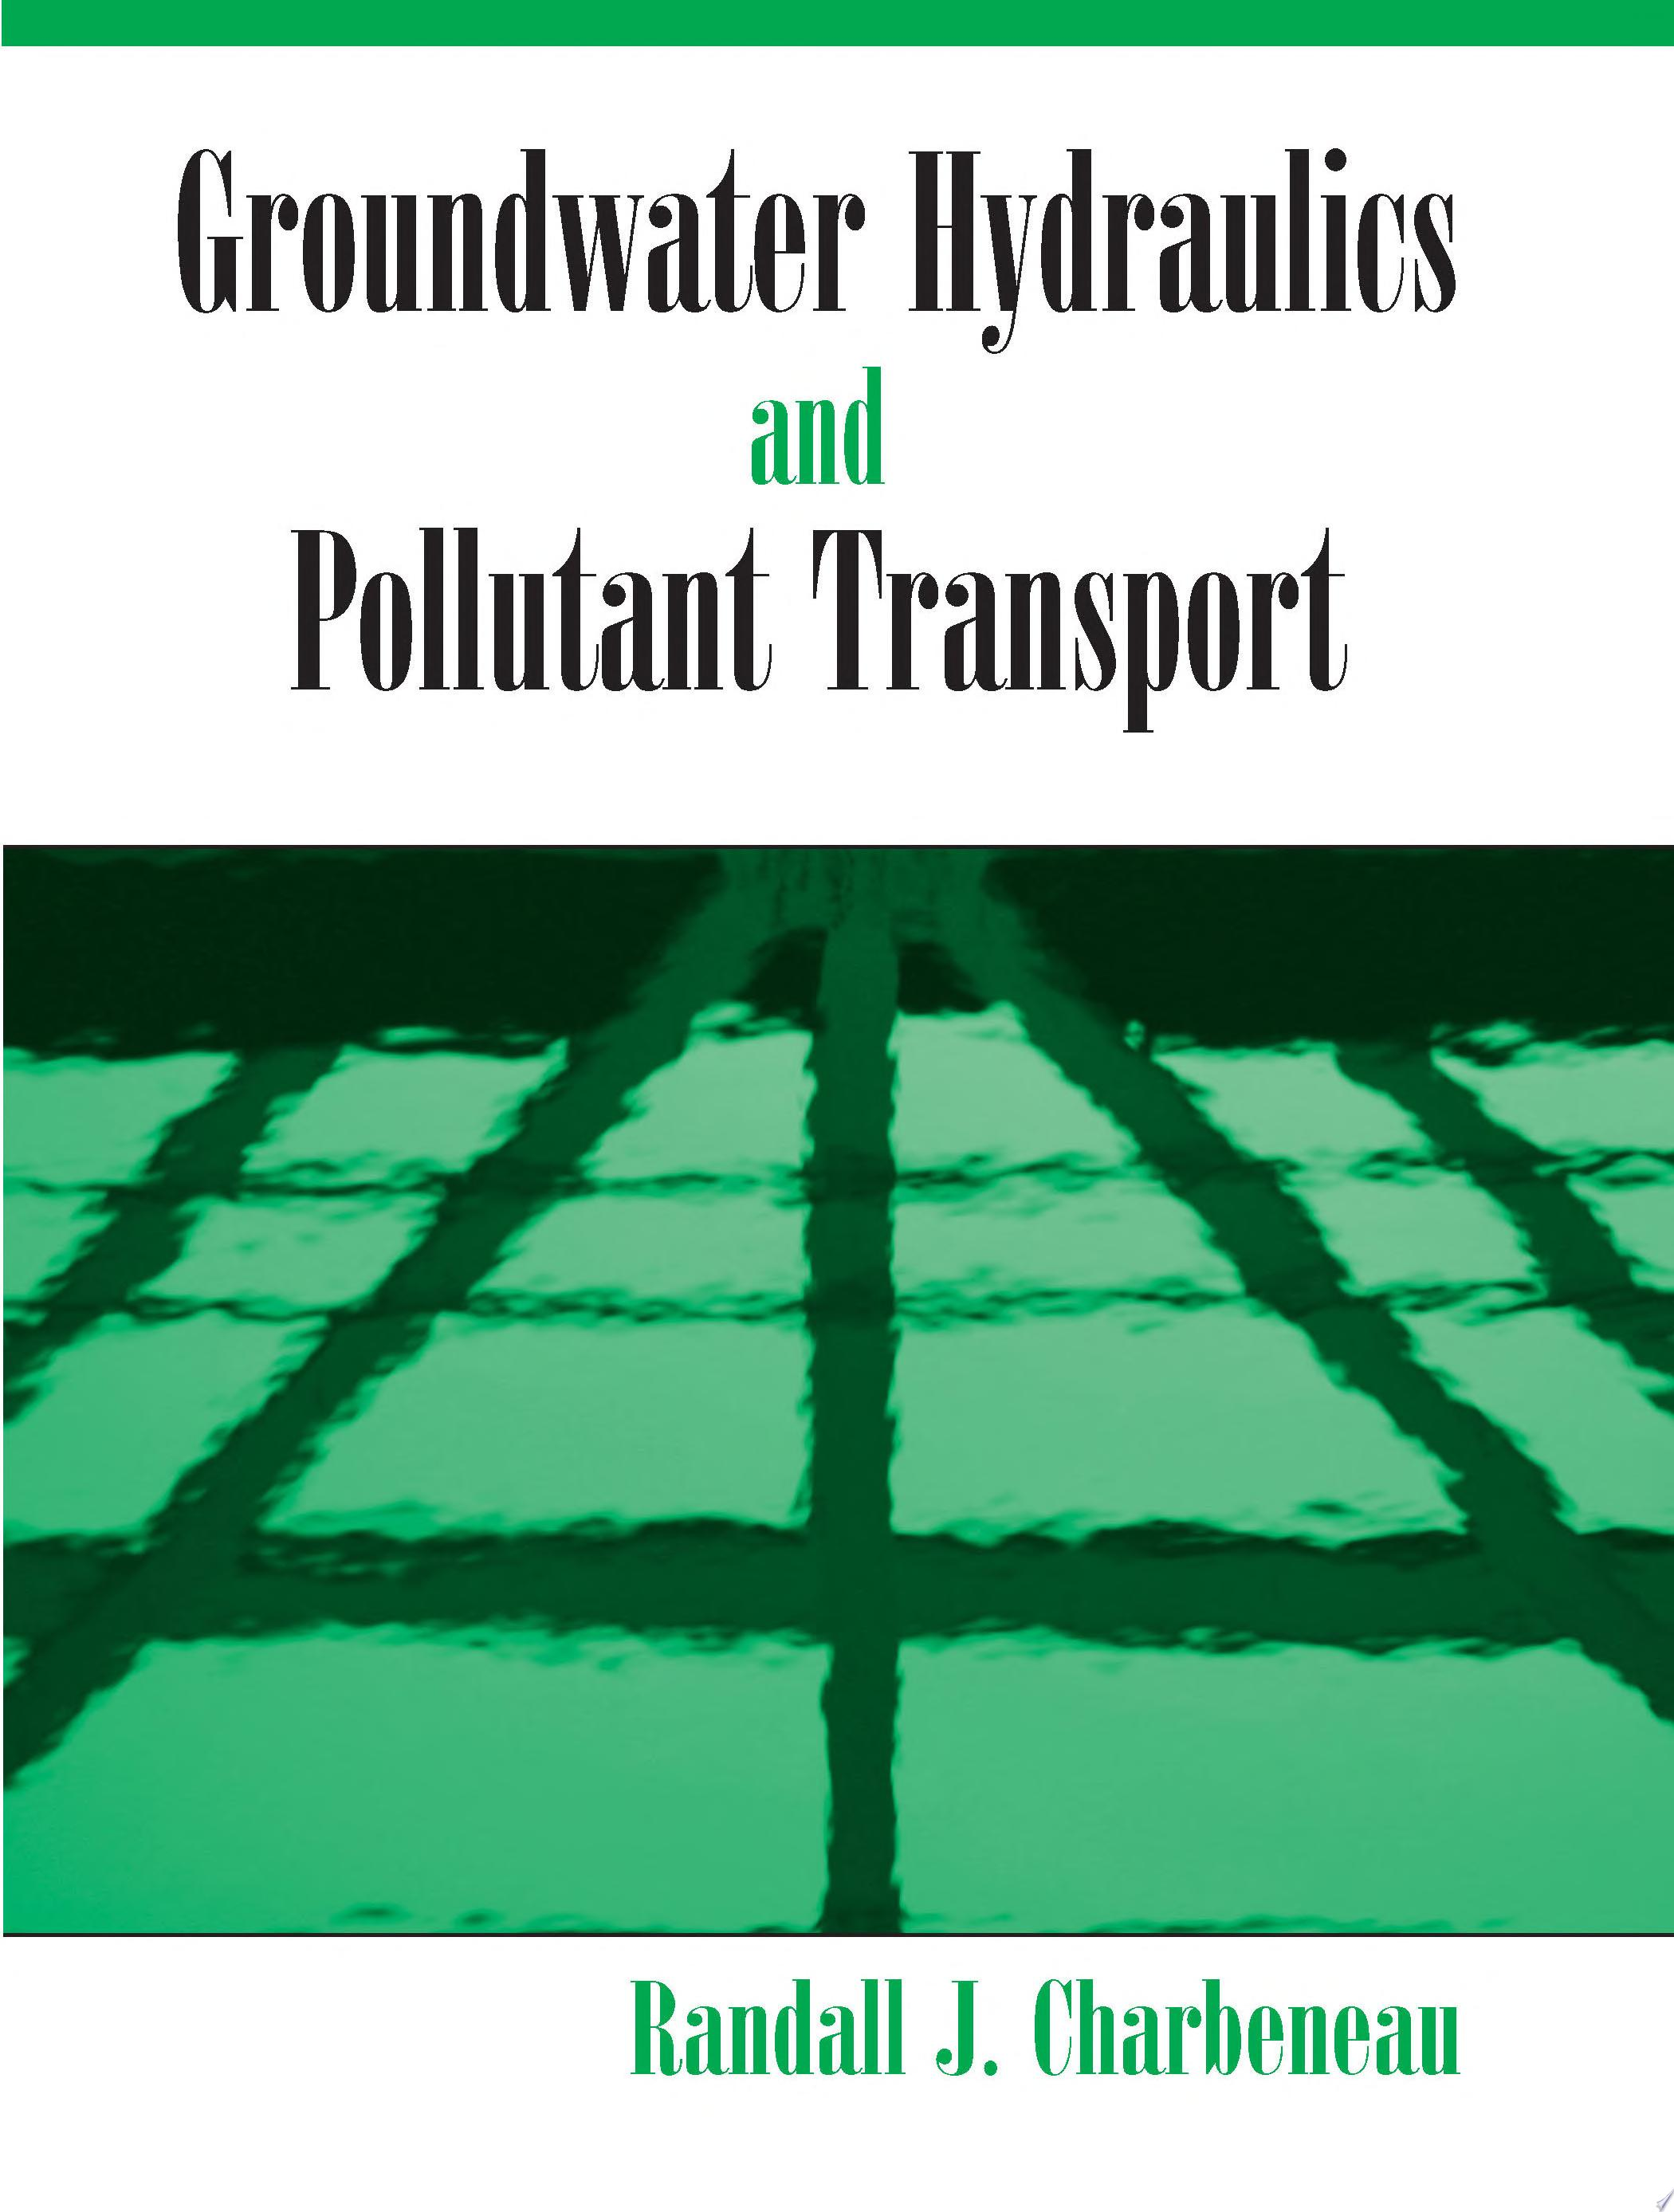 Groundwater Hydraulics and Pollutant Transport